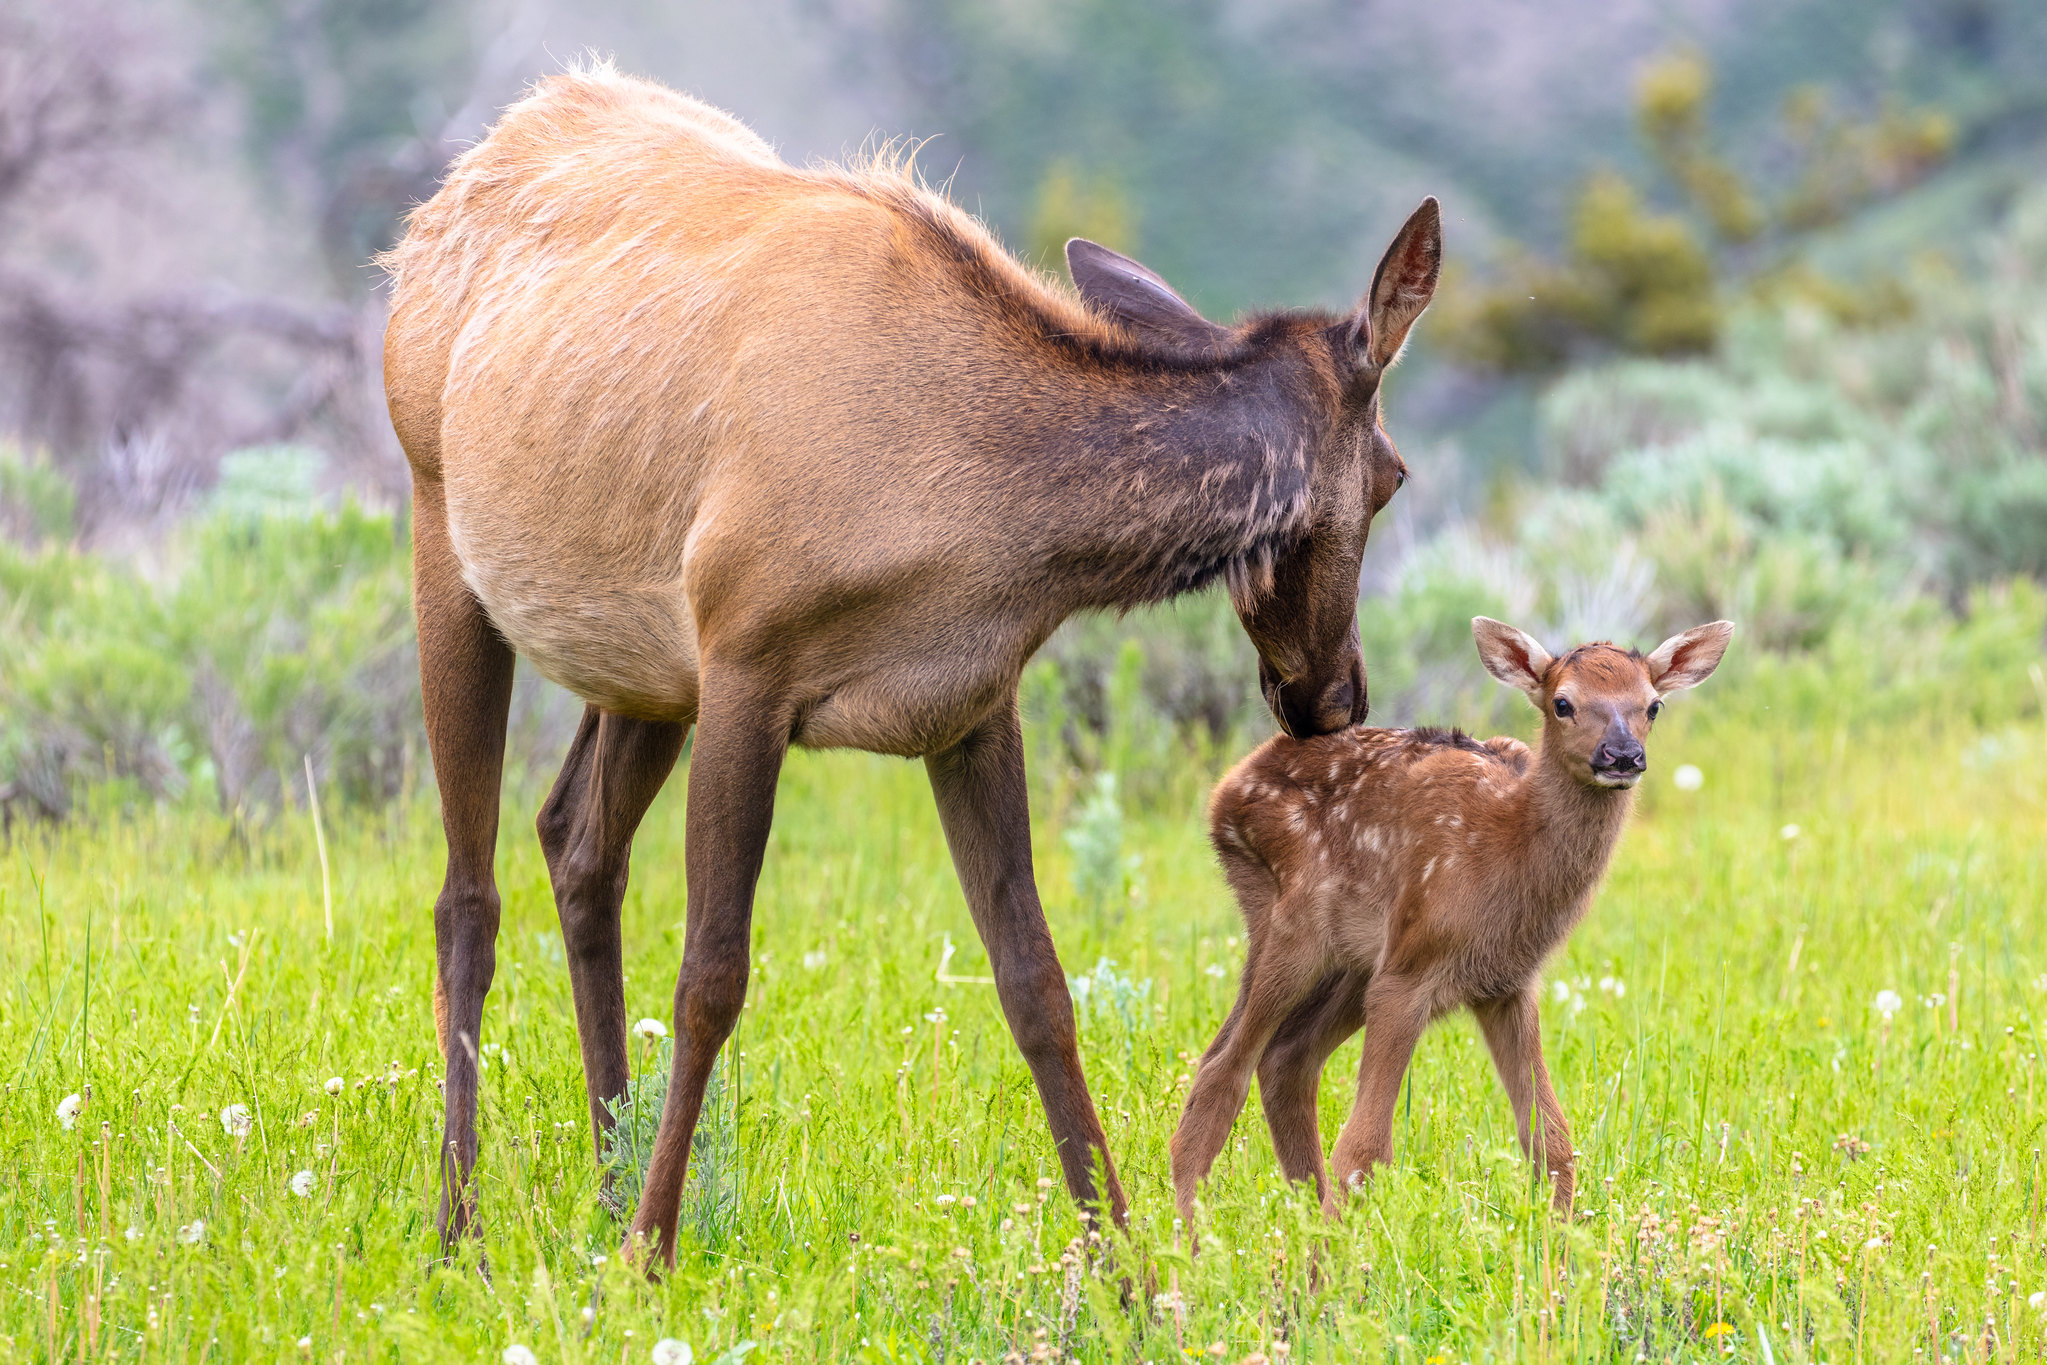 Mother elk grooming calf